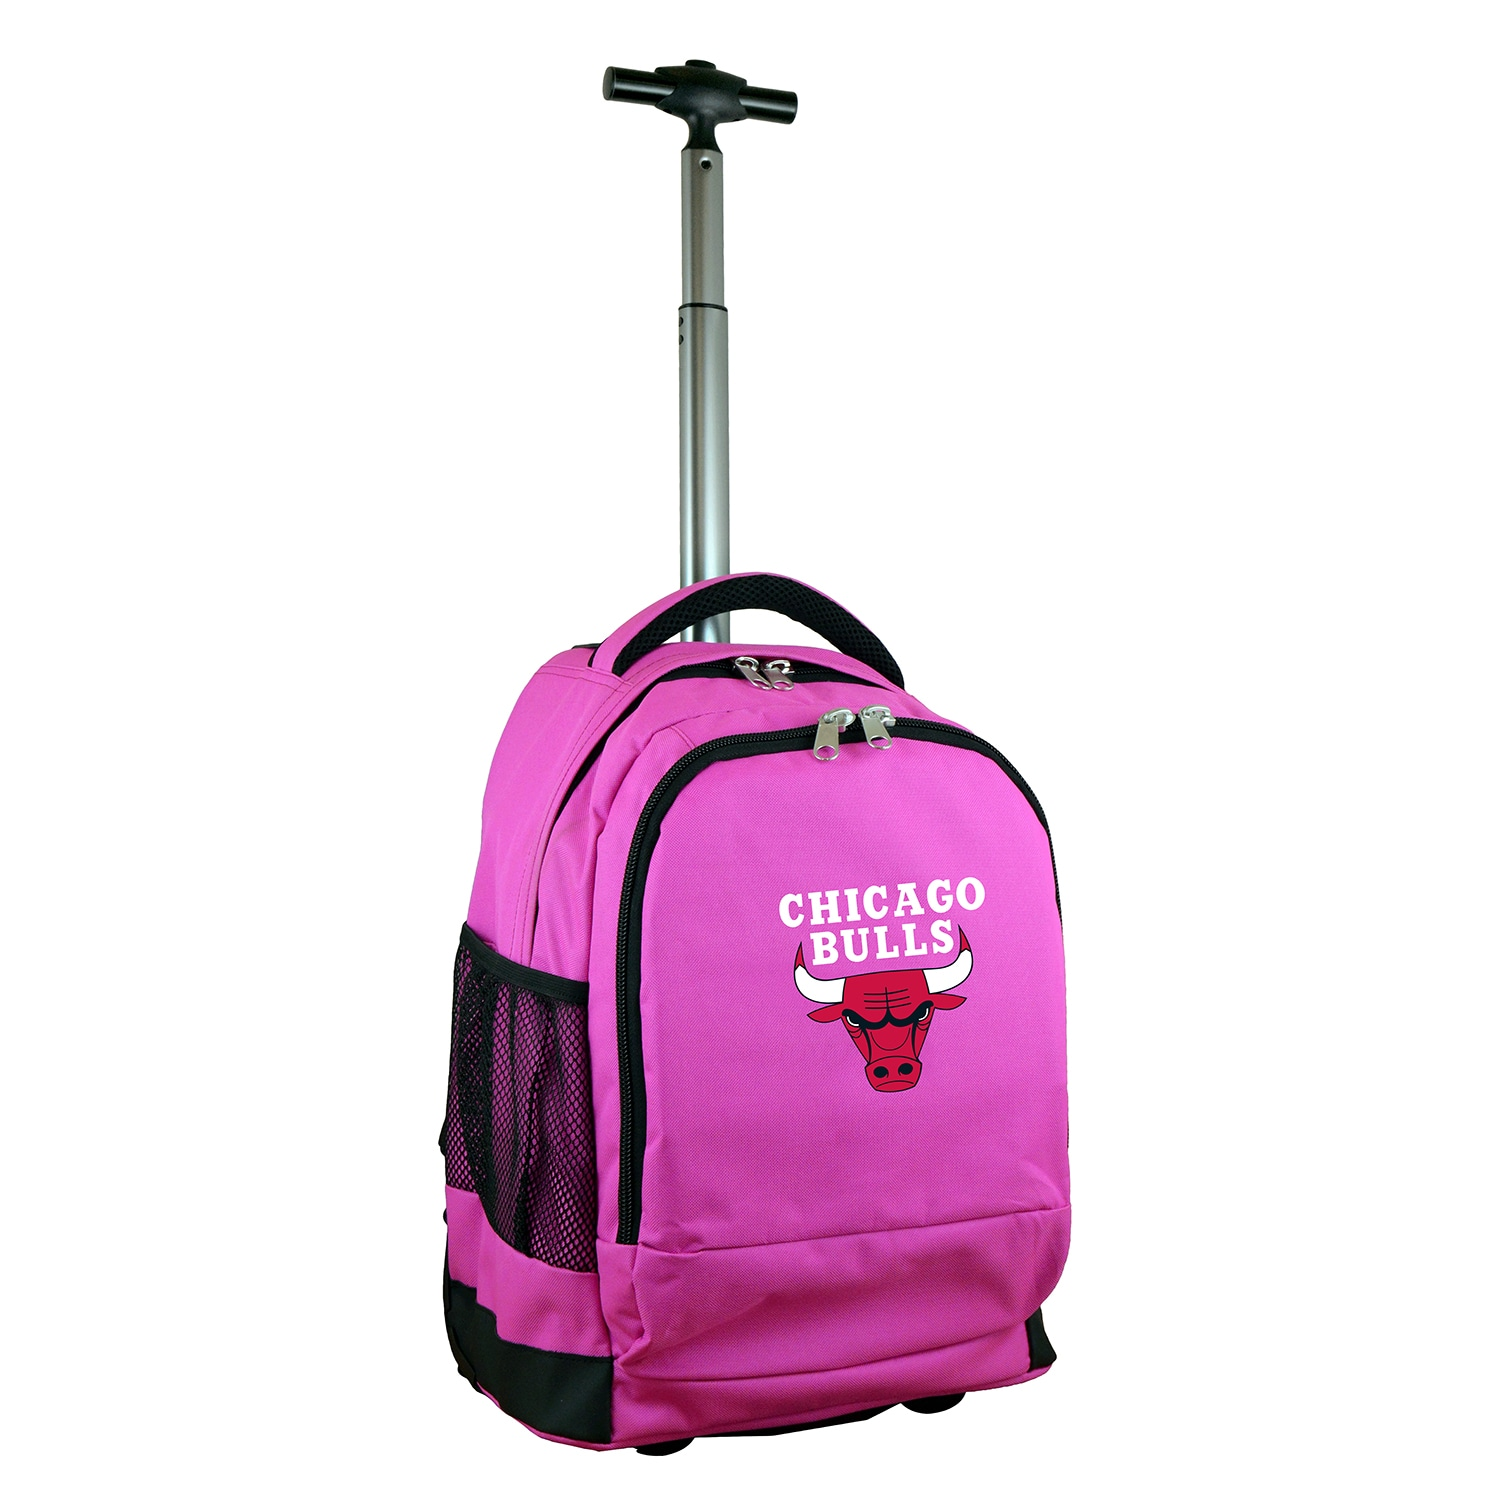 Chicago Bulls 19'' Premium Wheeled Backpack - Pink